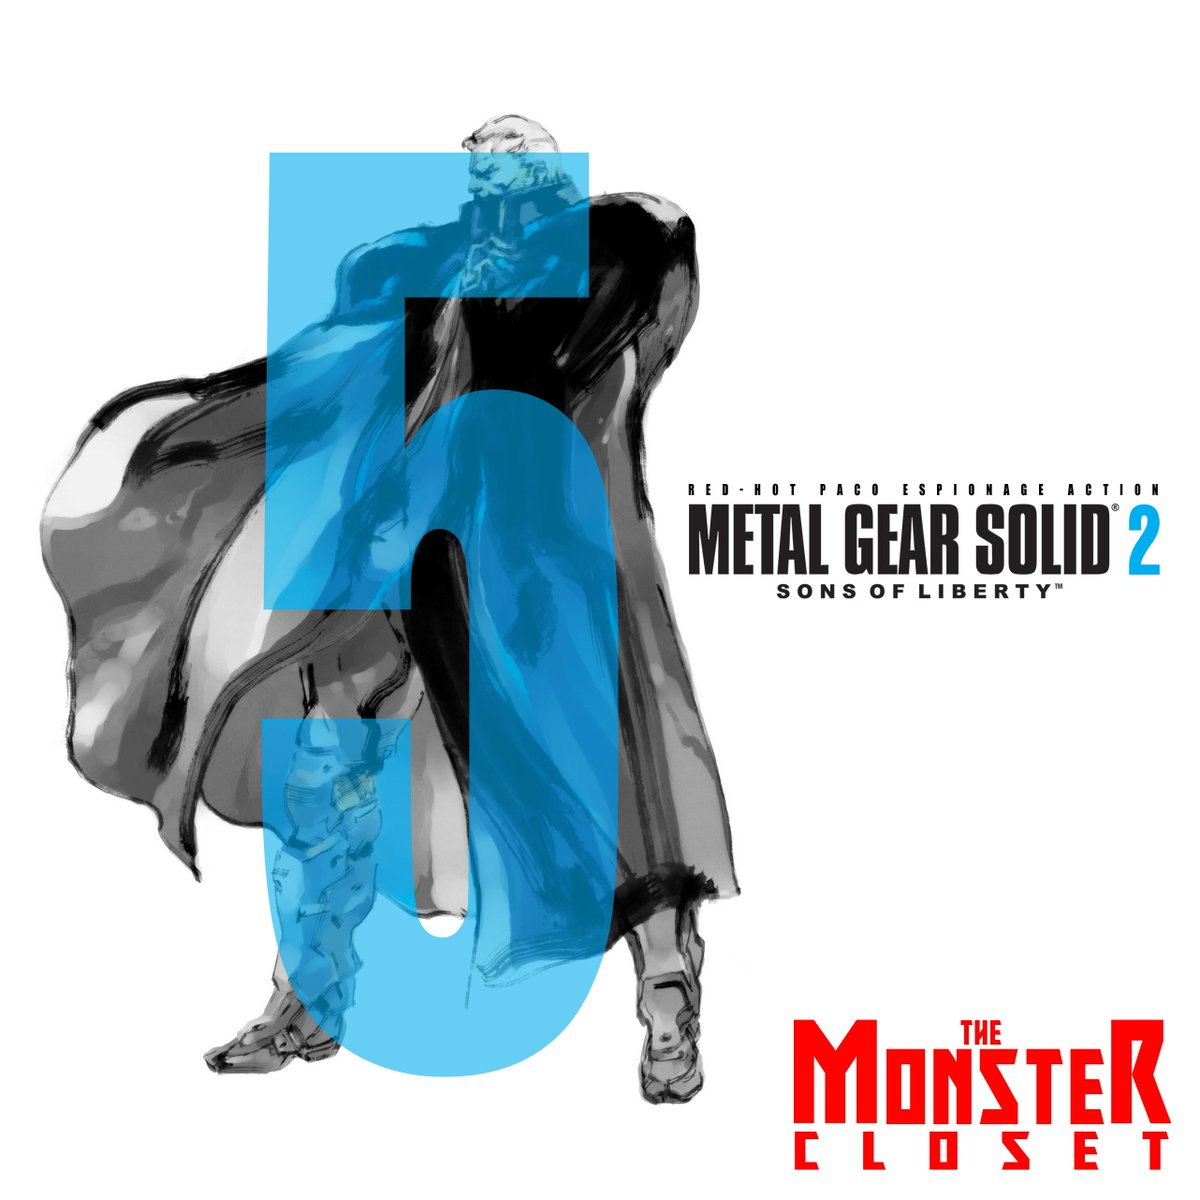 #new #podcast #episode #MetalGearSolid 2 part 5! Or How #JamesBond owes #MGS #GamersUnite #TeamGoblin #PodernFamily  http:// vgalmanac.com/podcast/red-ho t-paco-espionage-action/ &nbsp; … <br>http://pic.twitter.com/qMjW2fxbpt